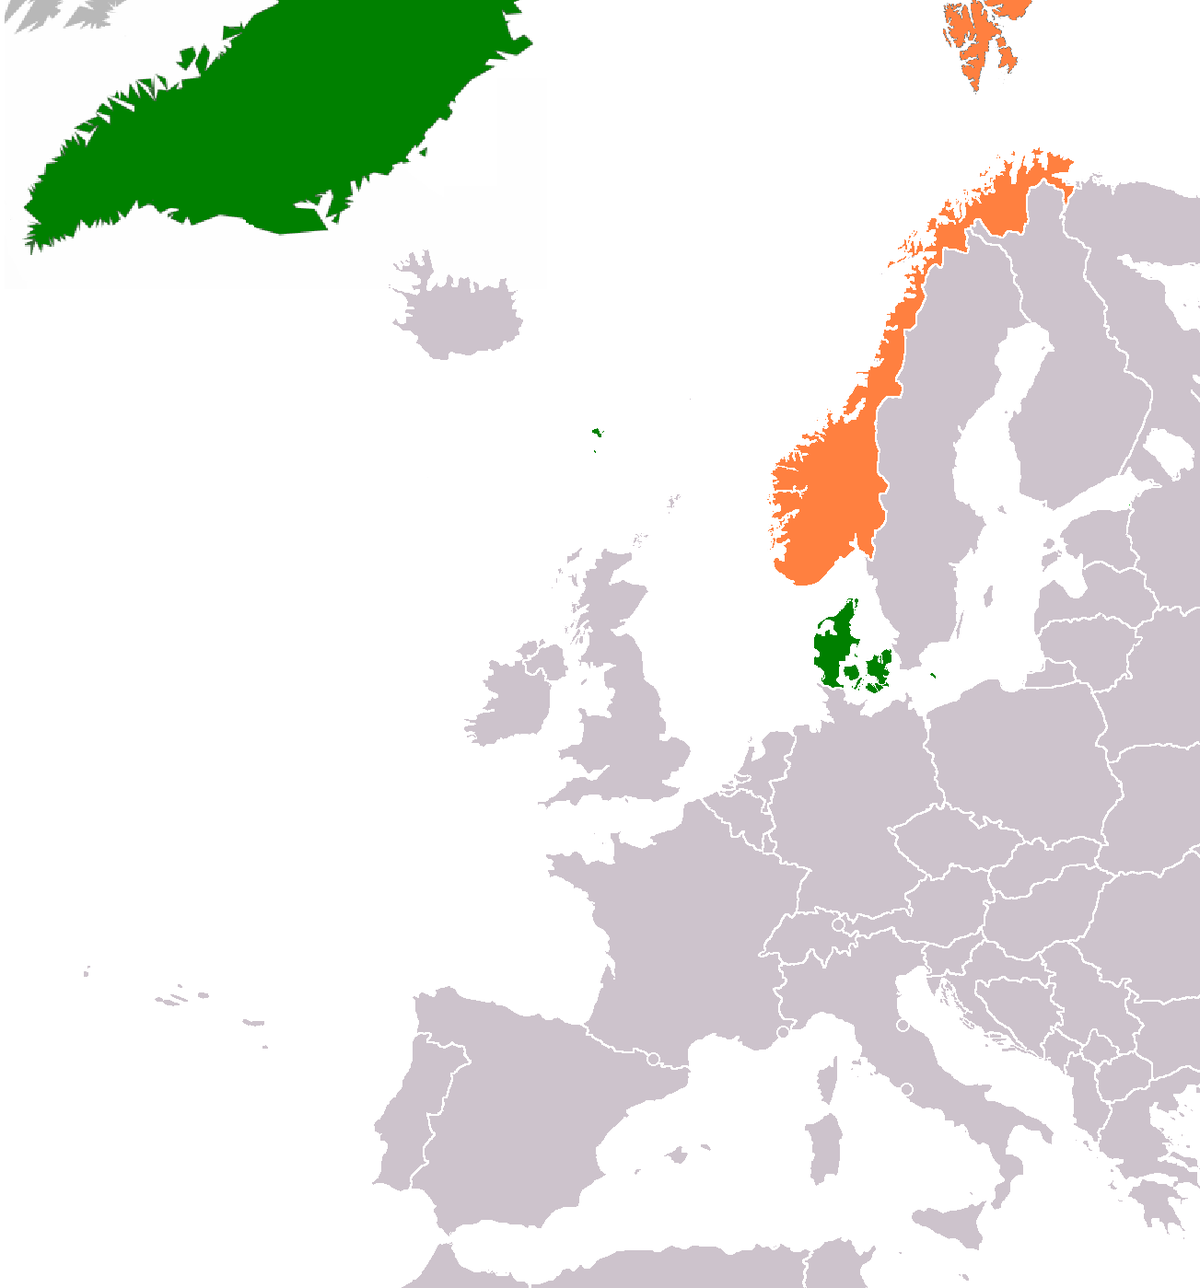 DenmarkNorway Relations Wikipedia - Norway map wiki